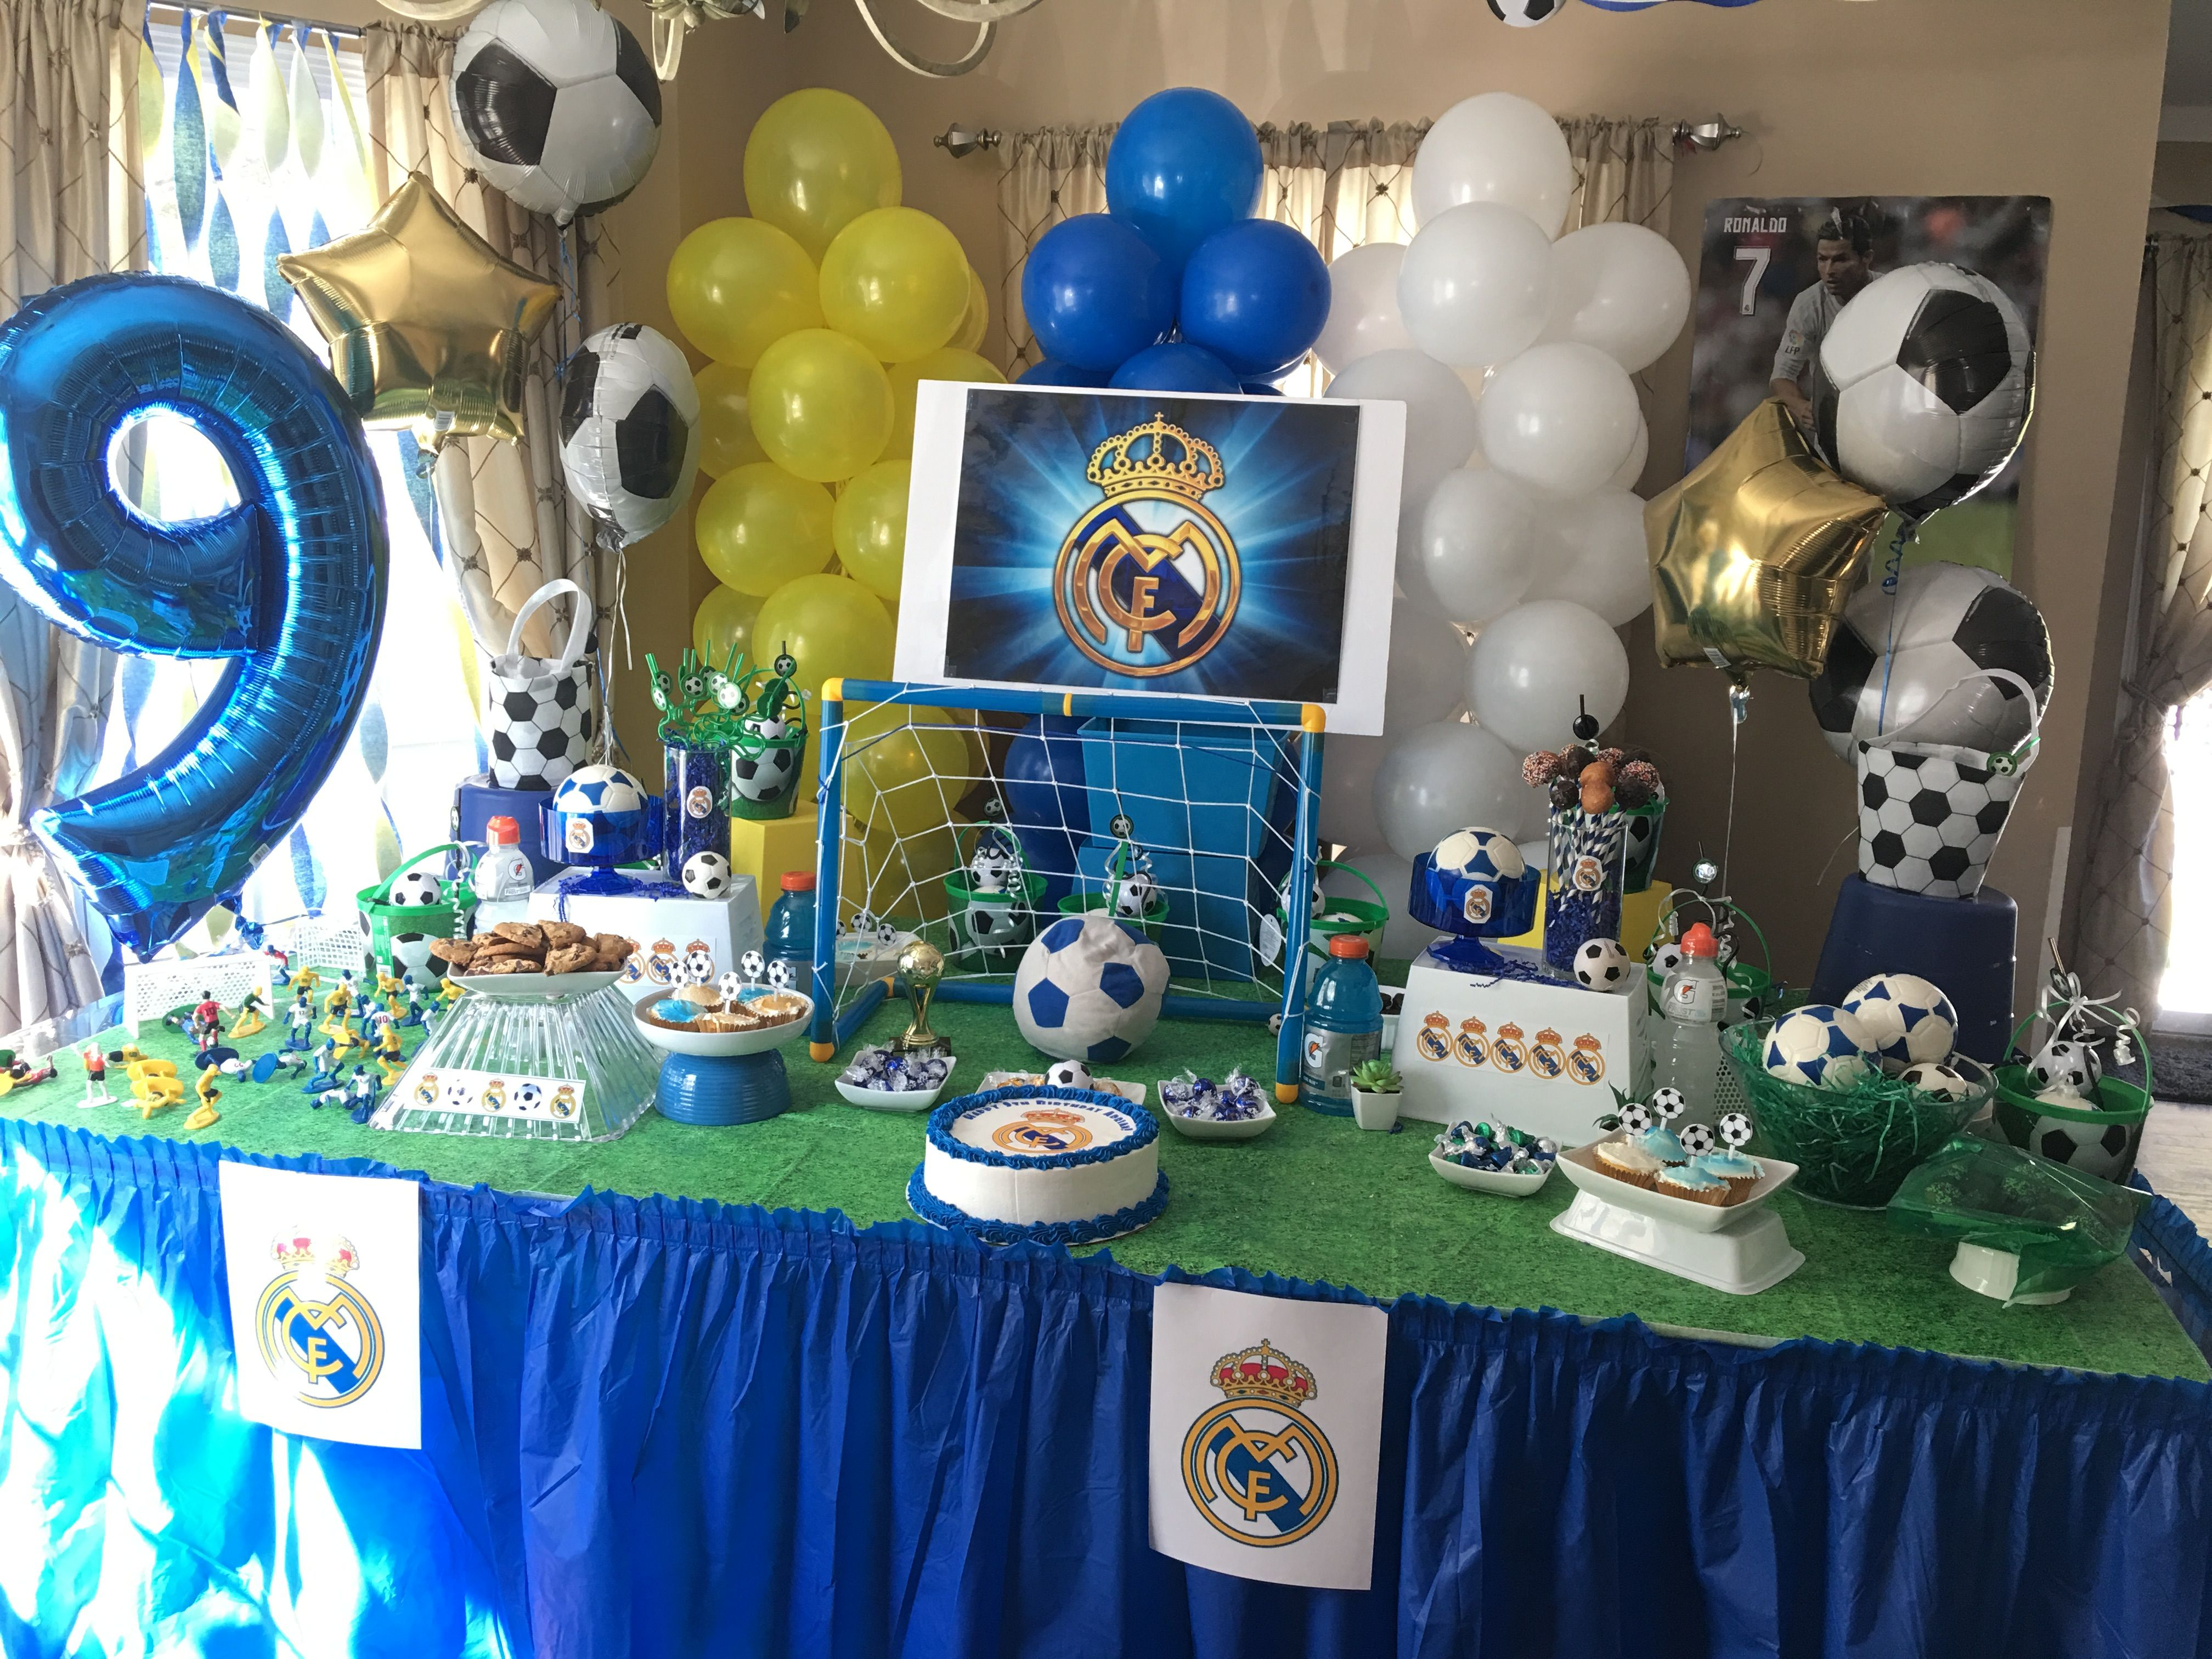 Juego De Mesa Real Madrid Real Madrid Birthday Party Fútbol Real Madrid Soccer